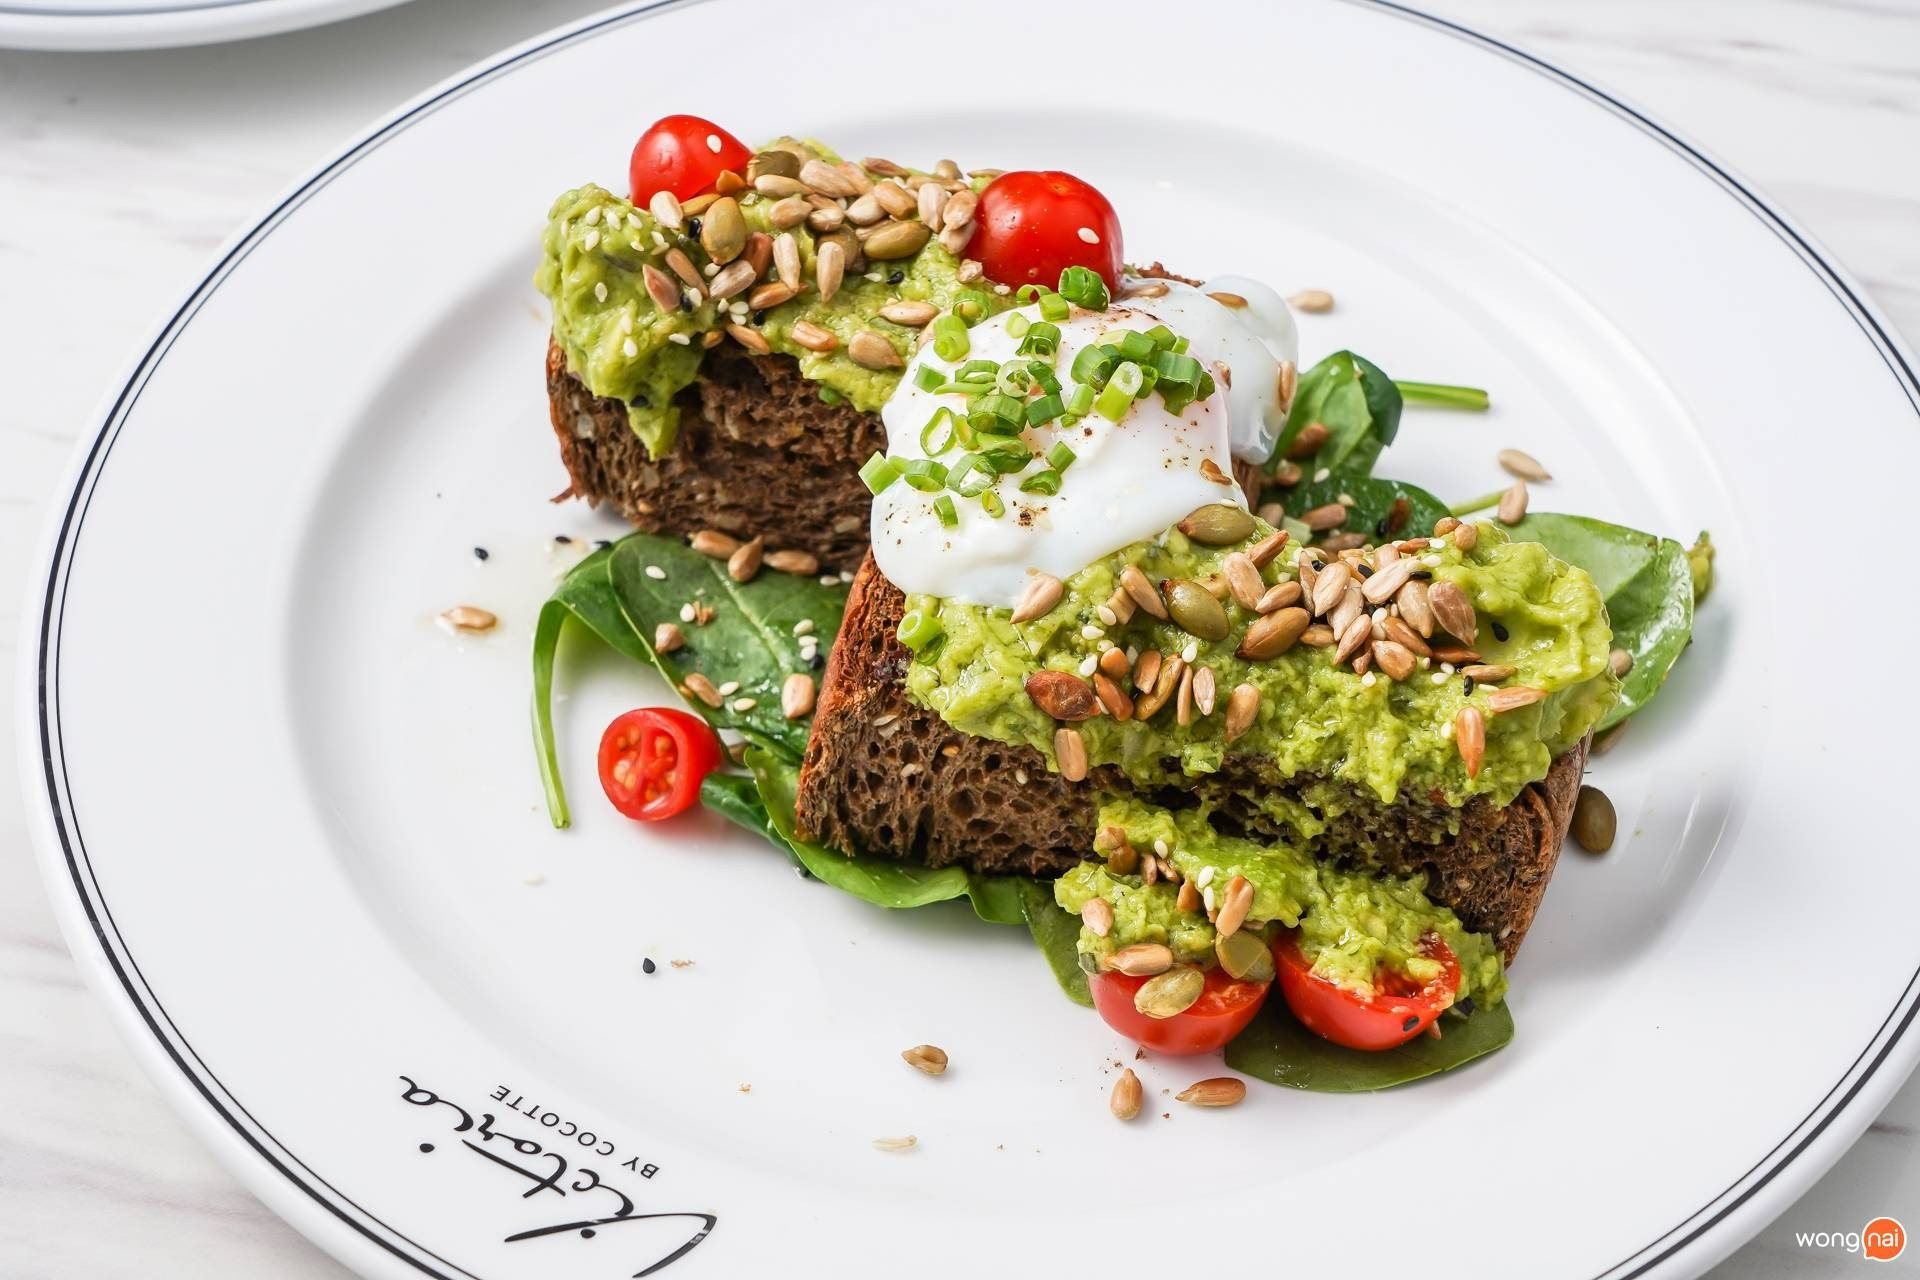 Healthy Corner: Avocado Toast (420 บาท)